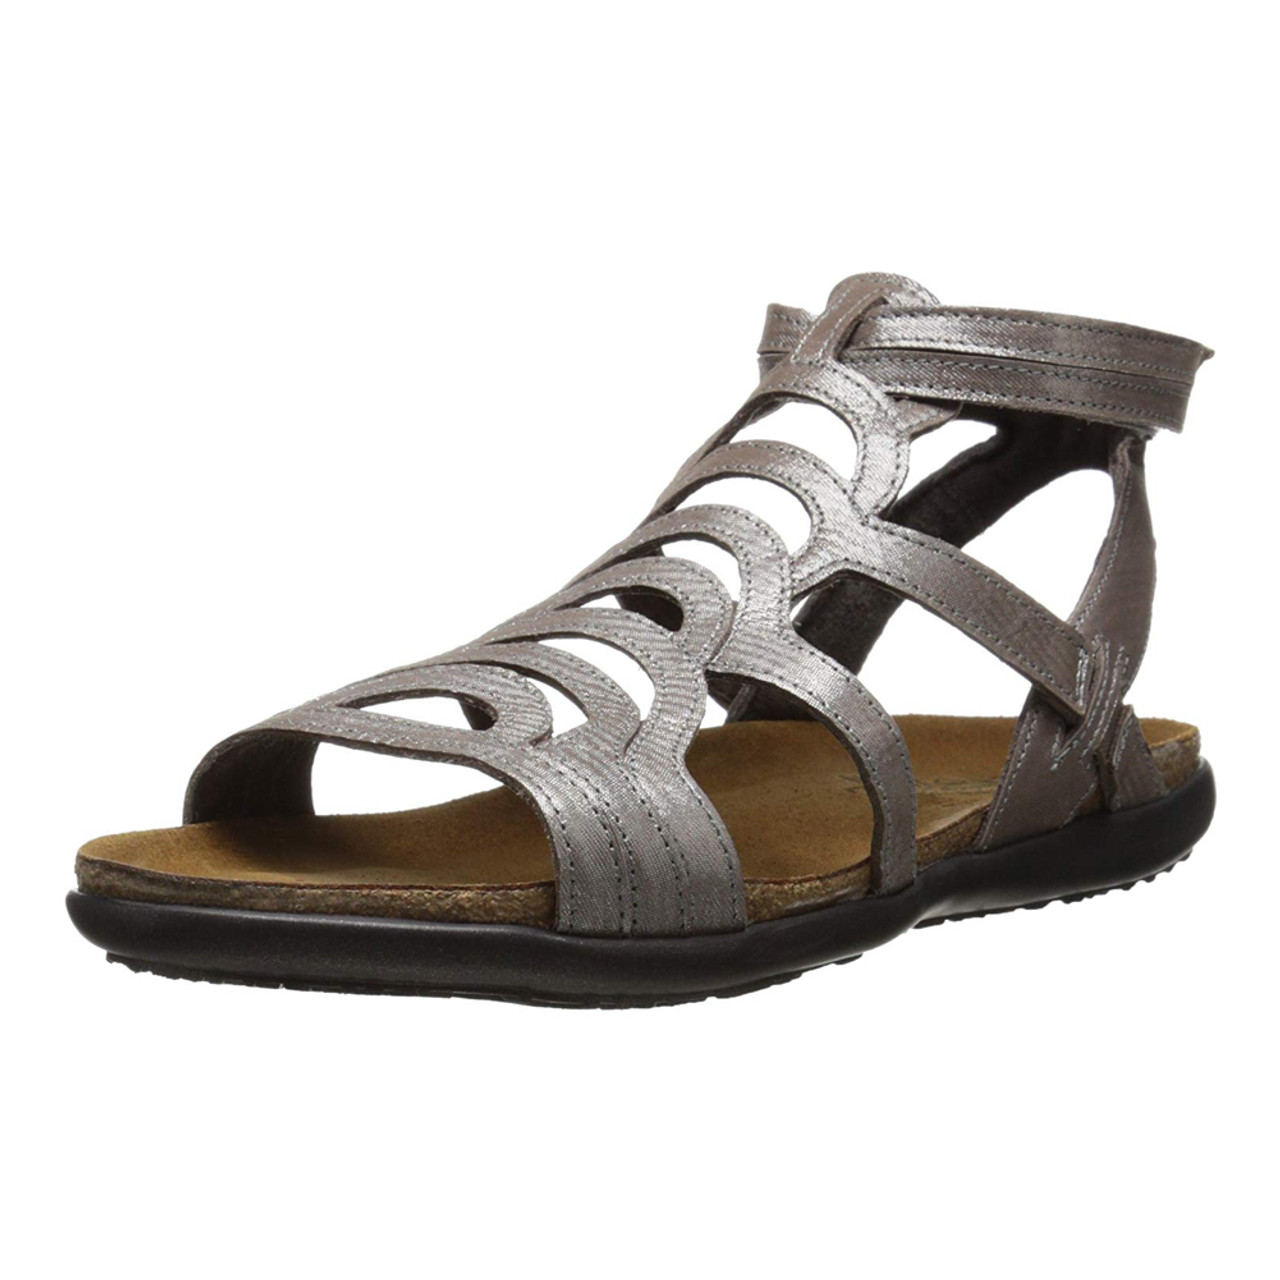 bea4fc5b64f3 Naot Women s Sara Sandal Silver Threads Leather - Shop now   Shoolu.com